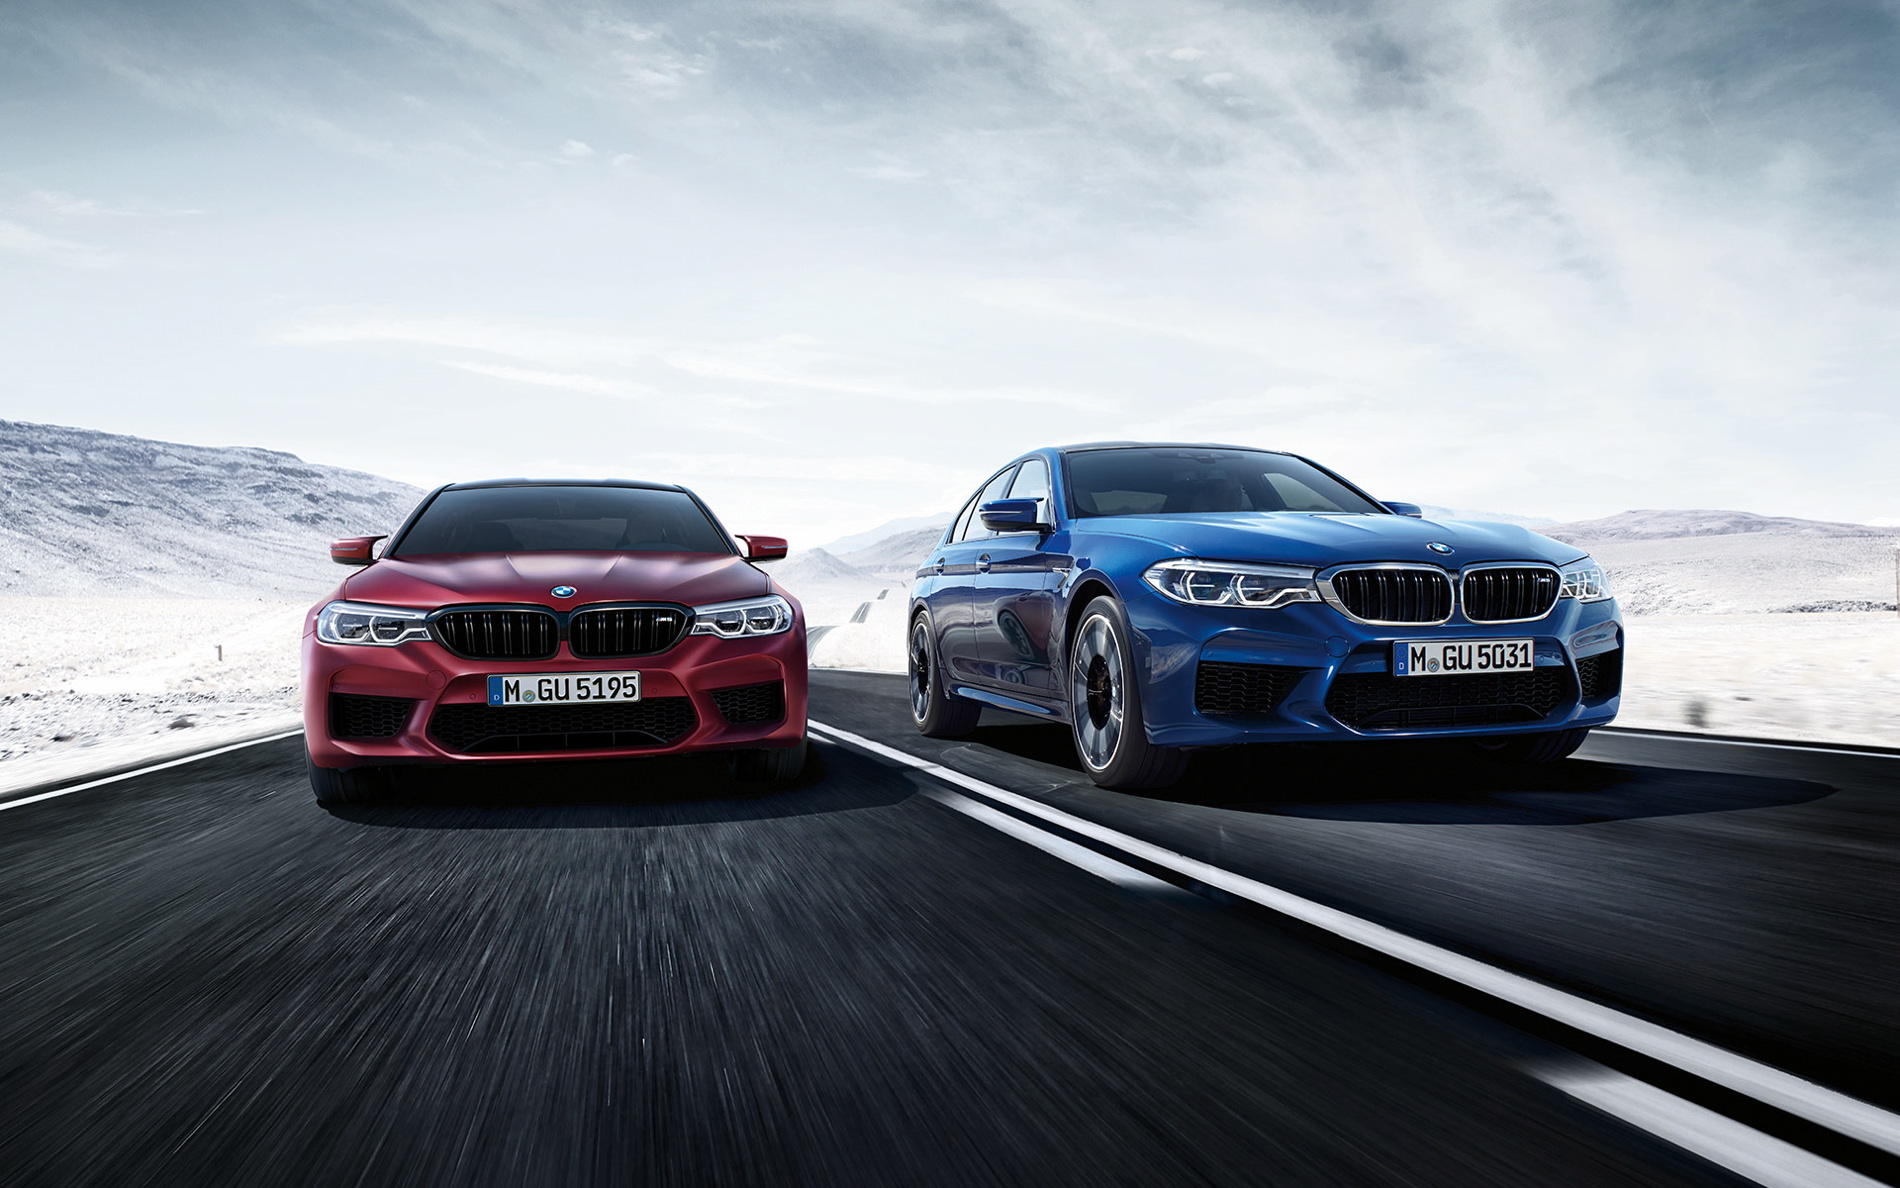 Download wallpapers of the new 2018 BMW F90 M5 1900x1188